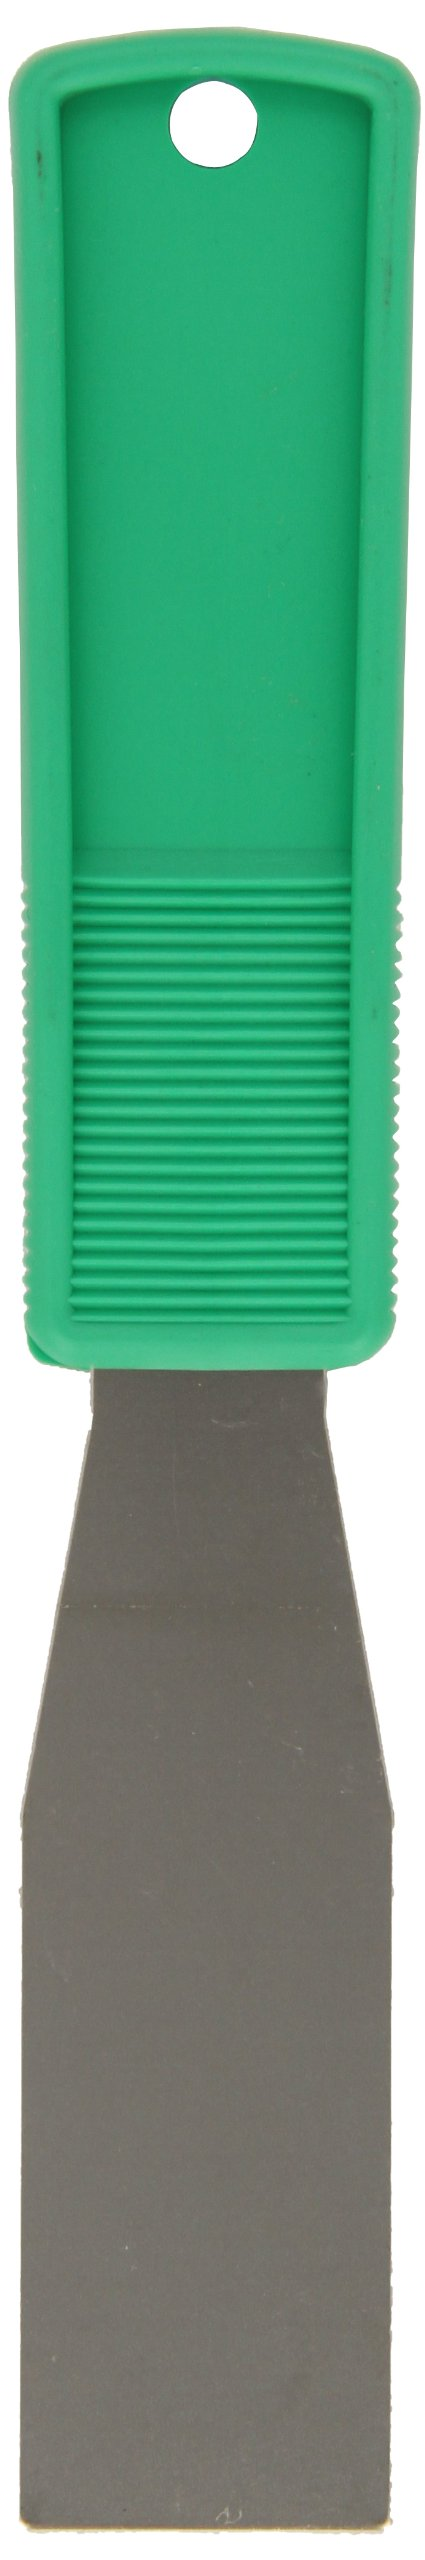 Impact 3202 Stainless Steel Putty Knife with Polypropylene Handle, 8'' Length x 1-1/4'' Width, Green (Case of 100)